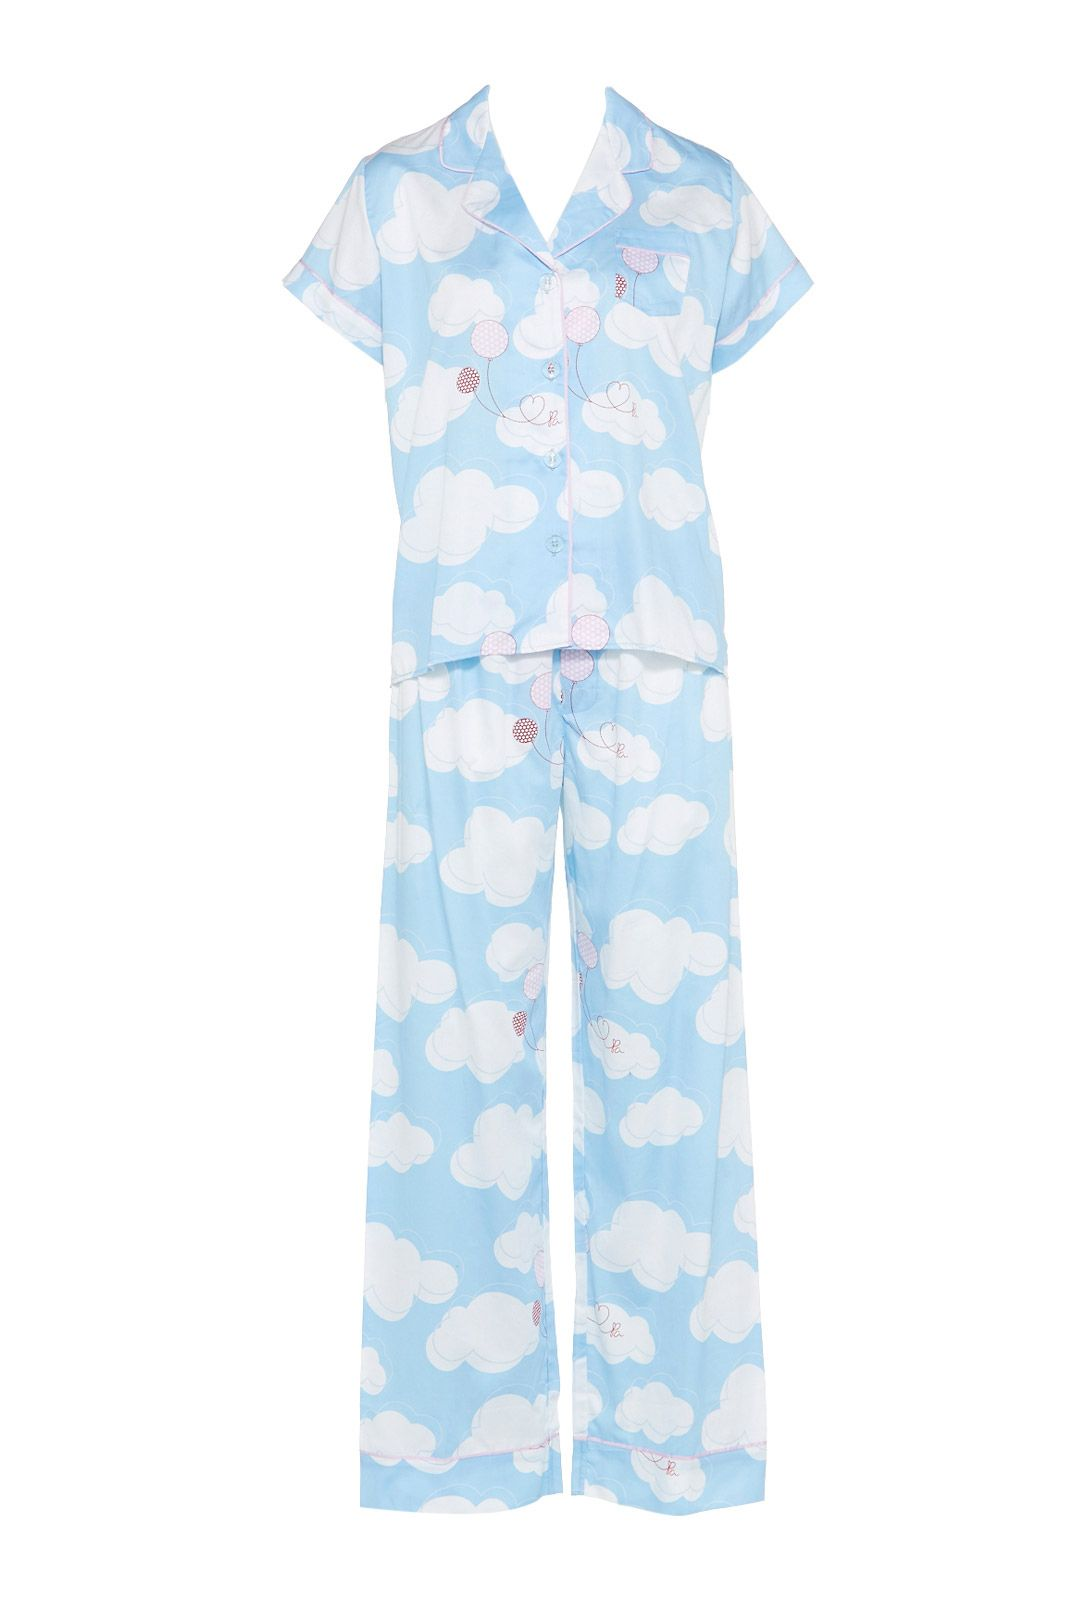 9d5b7a2819 Cloud Print Pj Set | Peter Alexander I LOVE CLOUD PYJAMAS ...